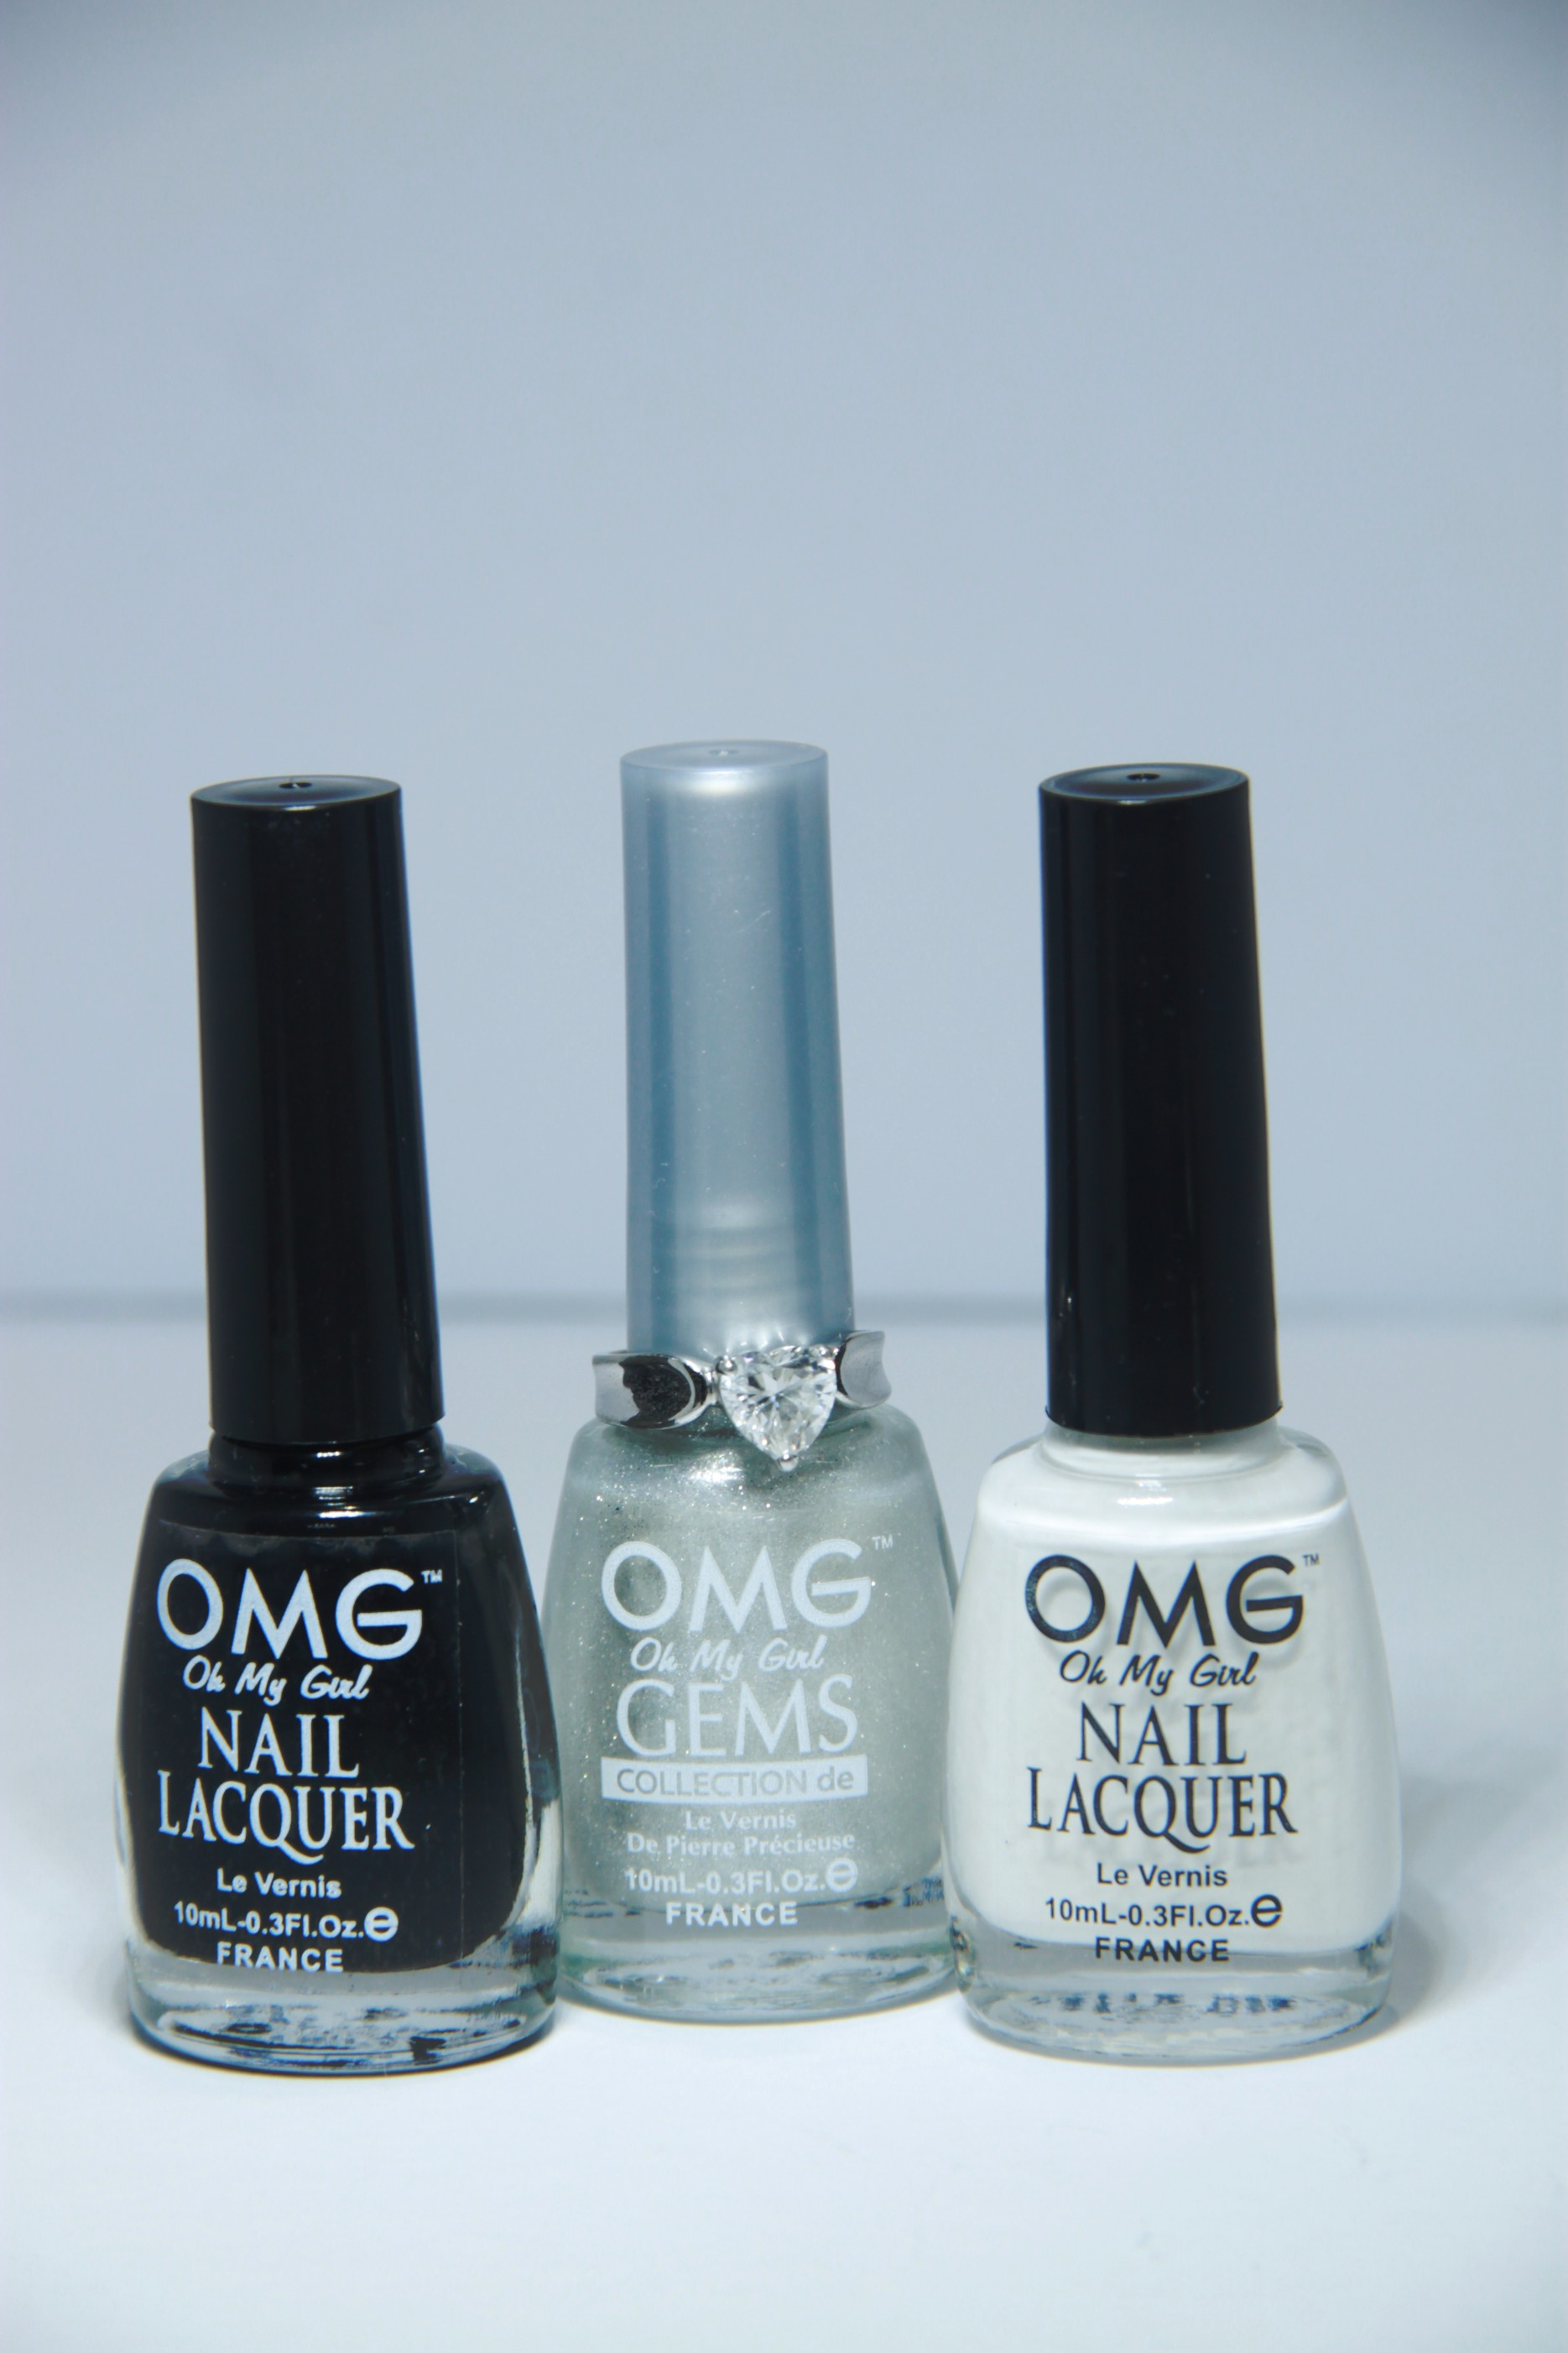 OMG NAILPOLISH OF THE MONTH: Shine Bright from head to toe with OMG ...